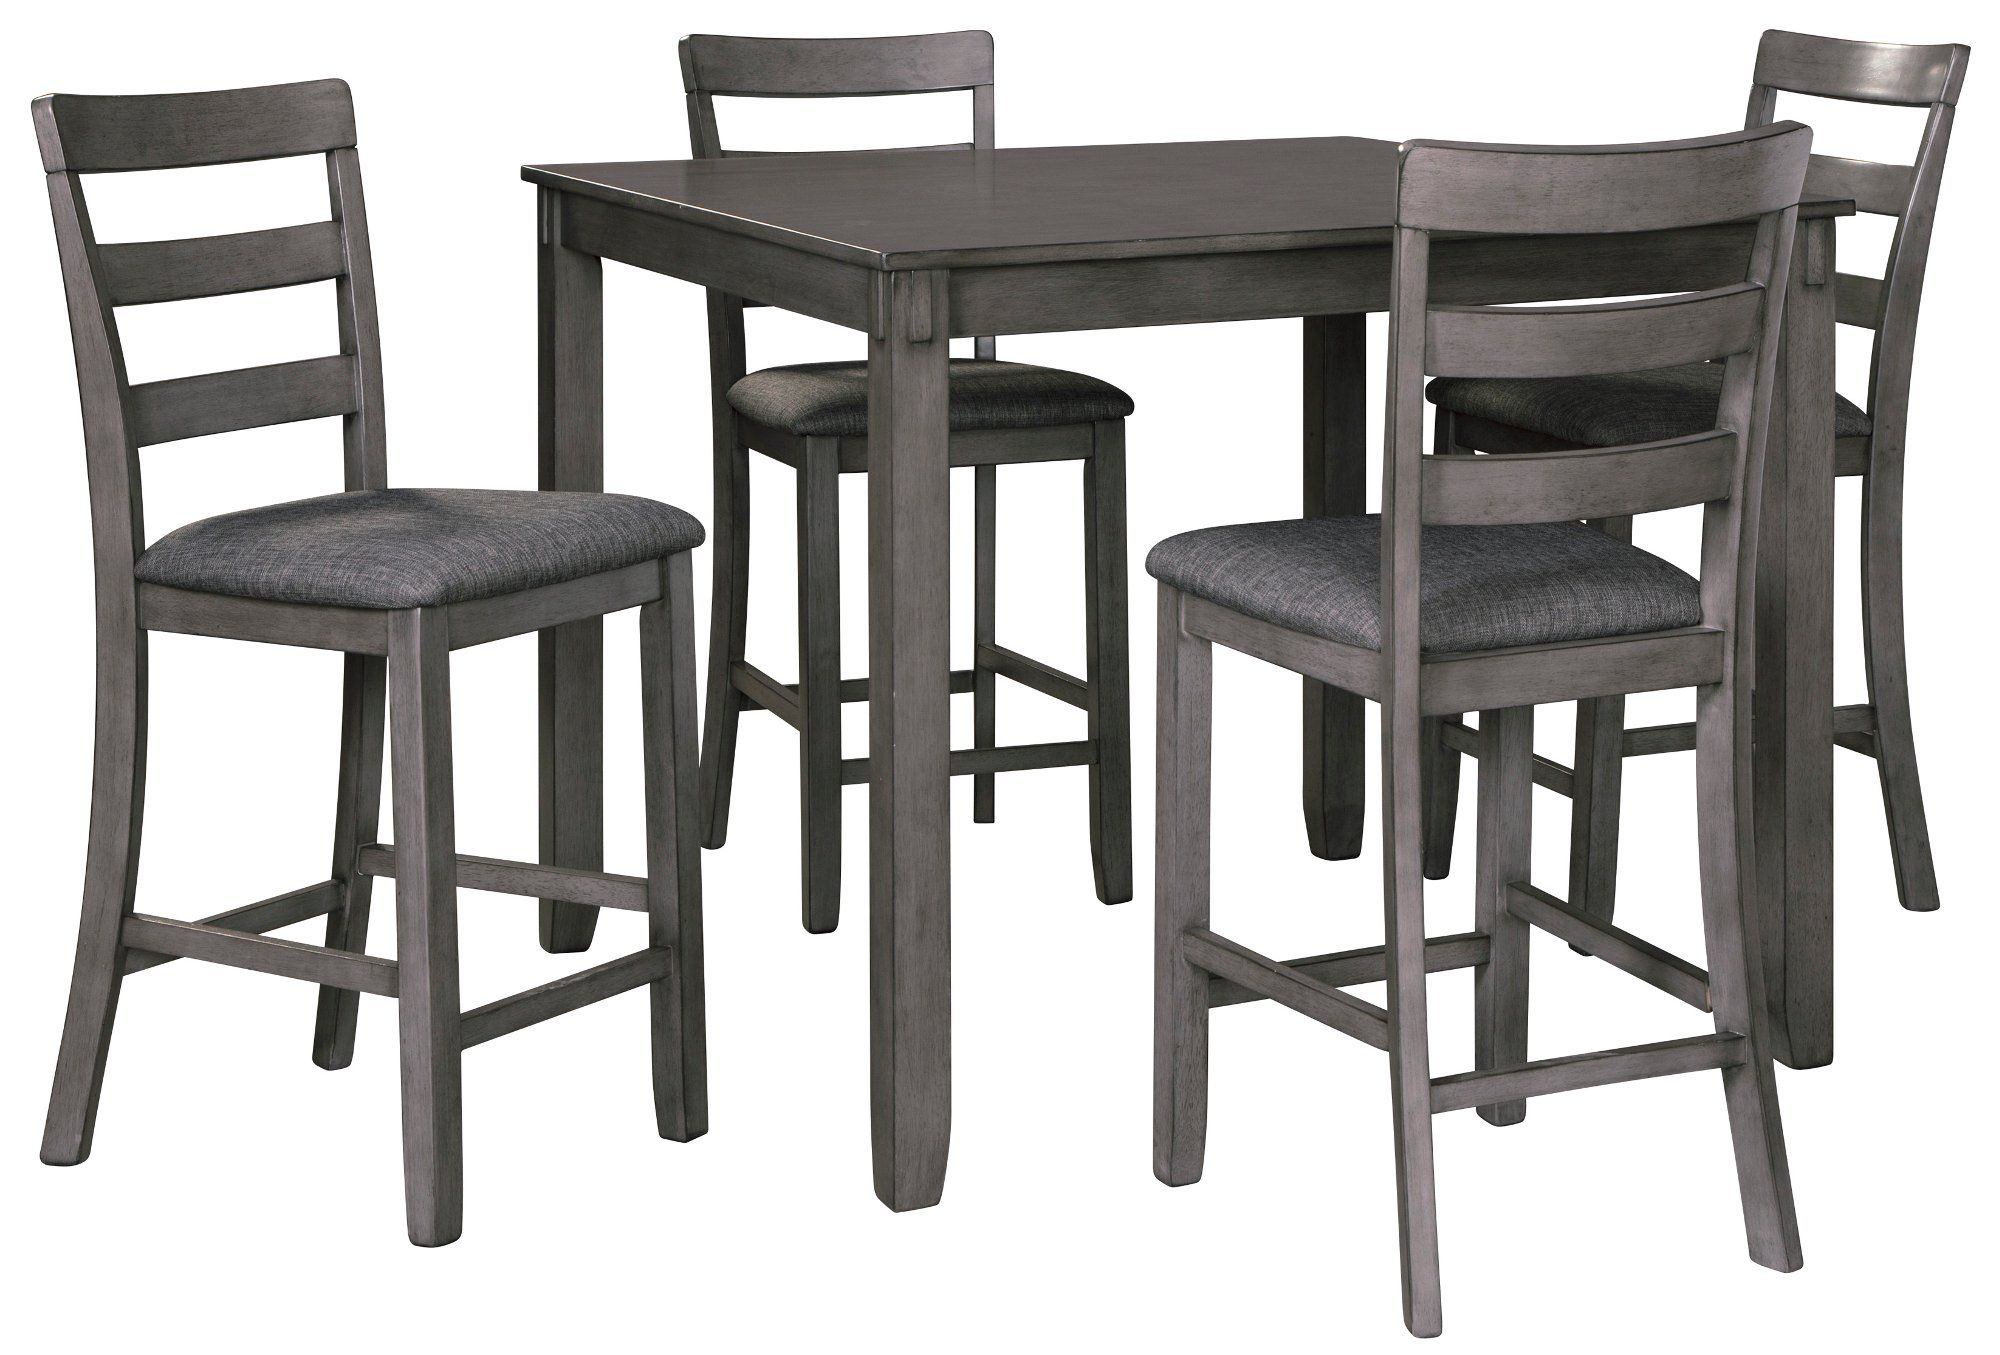 Transitional Gray 5 Piece Counter Height Dining Set Bridson In 2020 Counter Height Dining Sets Counter Height Table Sets Homemakers Furniture